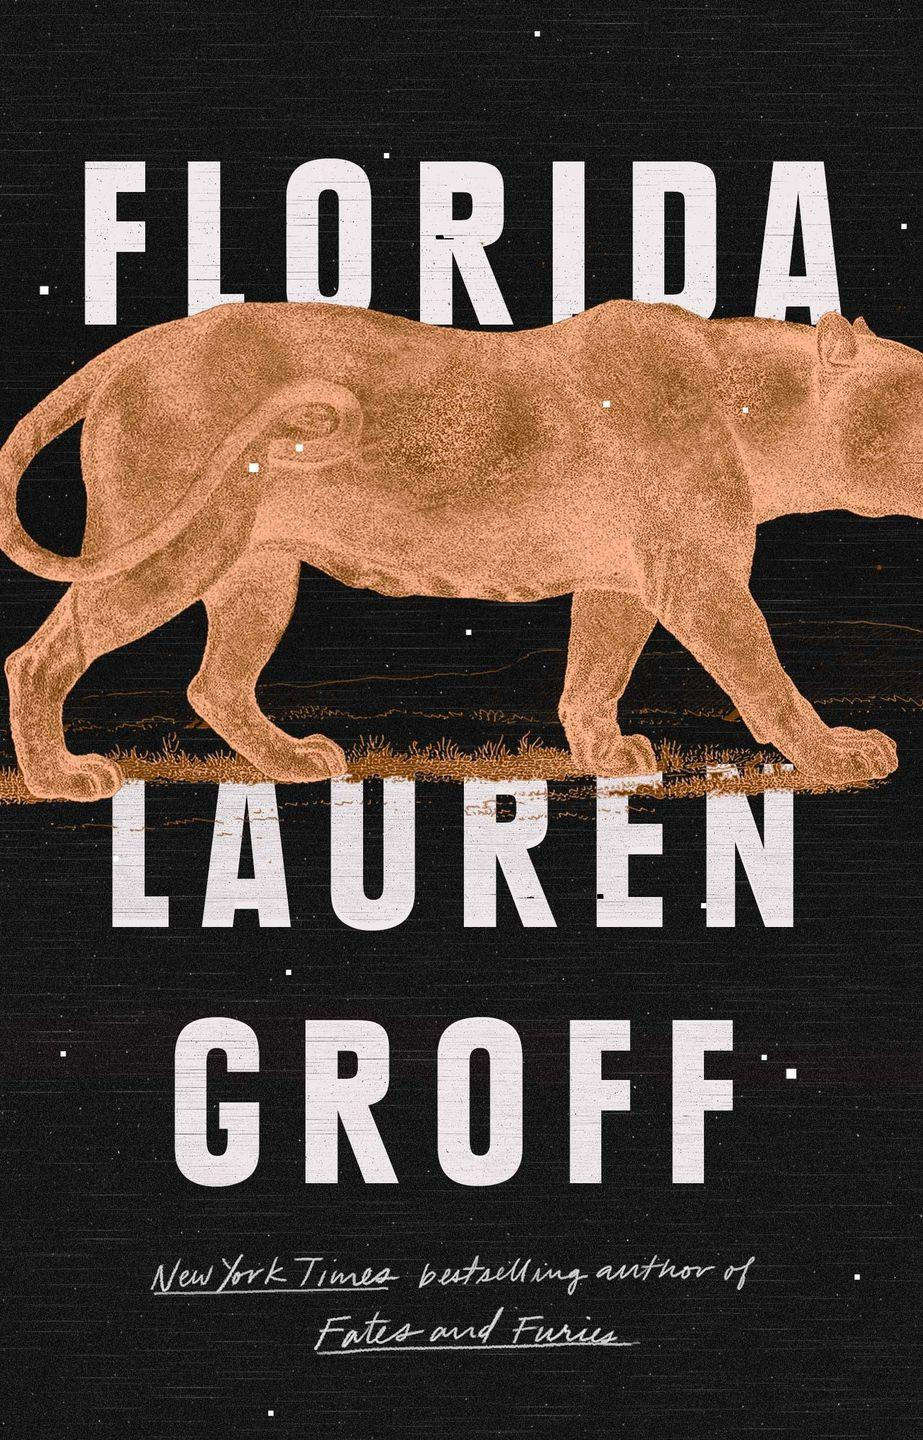 "<p>Snakes, crocodiles and lizards stalk the pages of this 2018 collection from one of America's most celebrated novelists, in which the muggy, murky state of Florida is always a principle character. Groff's mastery of language, plot and dialogue are on full display in a set of stories that linger long after you've closed the last page.</p><p><a class=""link rapid-noclick-resp"" href=""https://www.amazon.co.uk/Florida-Lauren-Groff/dp/1785151886/ref=sr_1_1?s=books&ie=UTF8&qid=1533559987&sr=1-1&keywords=florida+lauren+groff&tag=hearstuk-yahoo-21&ascsubtag=%5Bartid%7C1923.g.15840493%5Bsrc%7Cyahoo-uk"" rel=""nofollow noopener"" target=""_blank"" data-ylk=""slk:SHOP"">SHOP</a><br></p>"